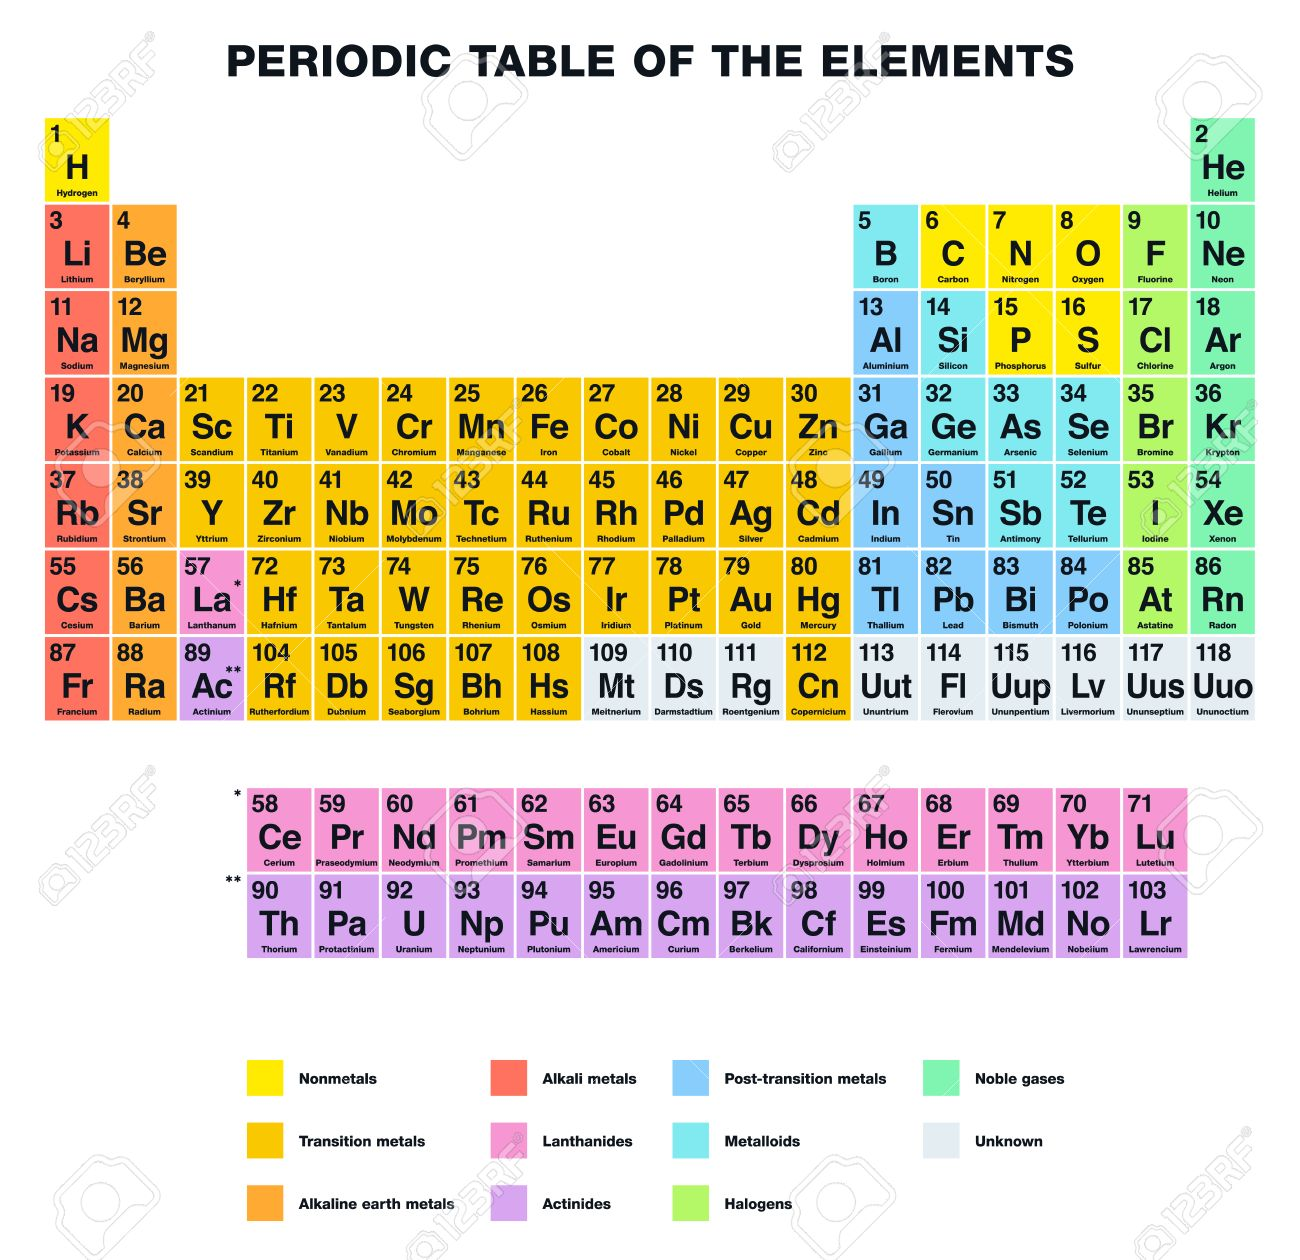 Periodic table of the elements english labeling tabular periodic table of the elements english labeling tabular arrangement of chemical elements with their atomic urtaz Choice Image